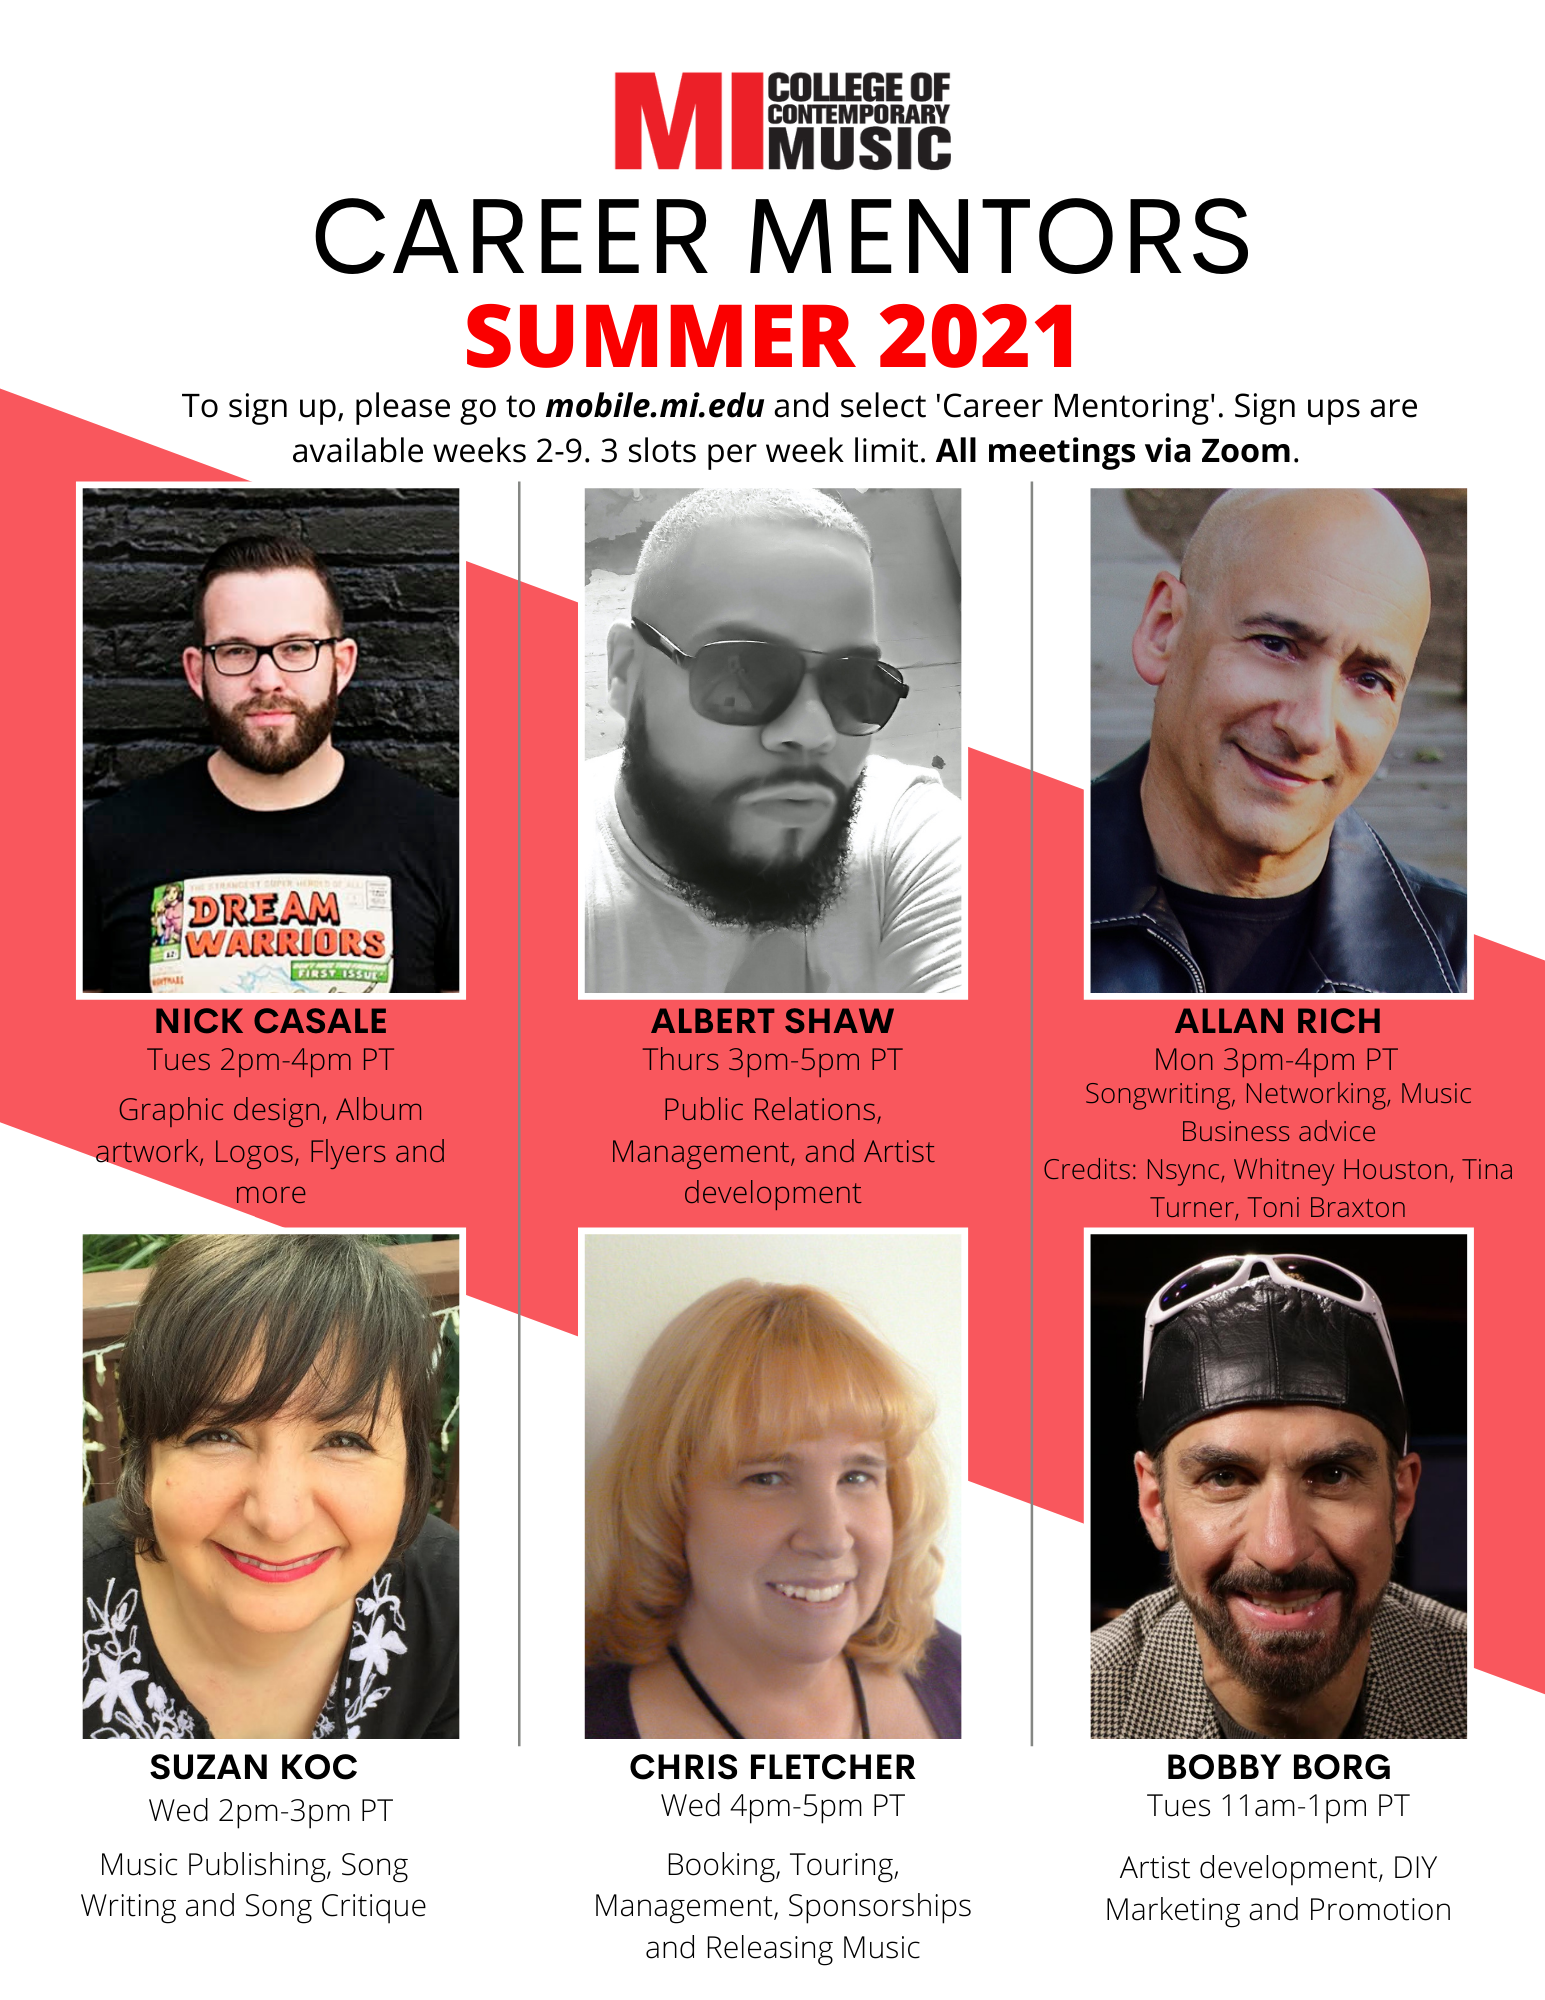 Career Mentors Summer 2021; To sign up, please go tomobile.mi.eduand select 'Career Mentoring'. Sign ups are available weeks 2-9. 3 slots per week limit.All meetings are via Zoom.